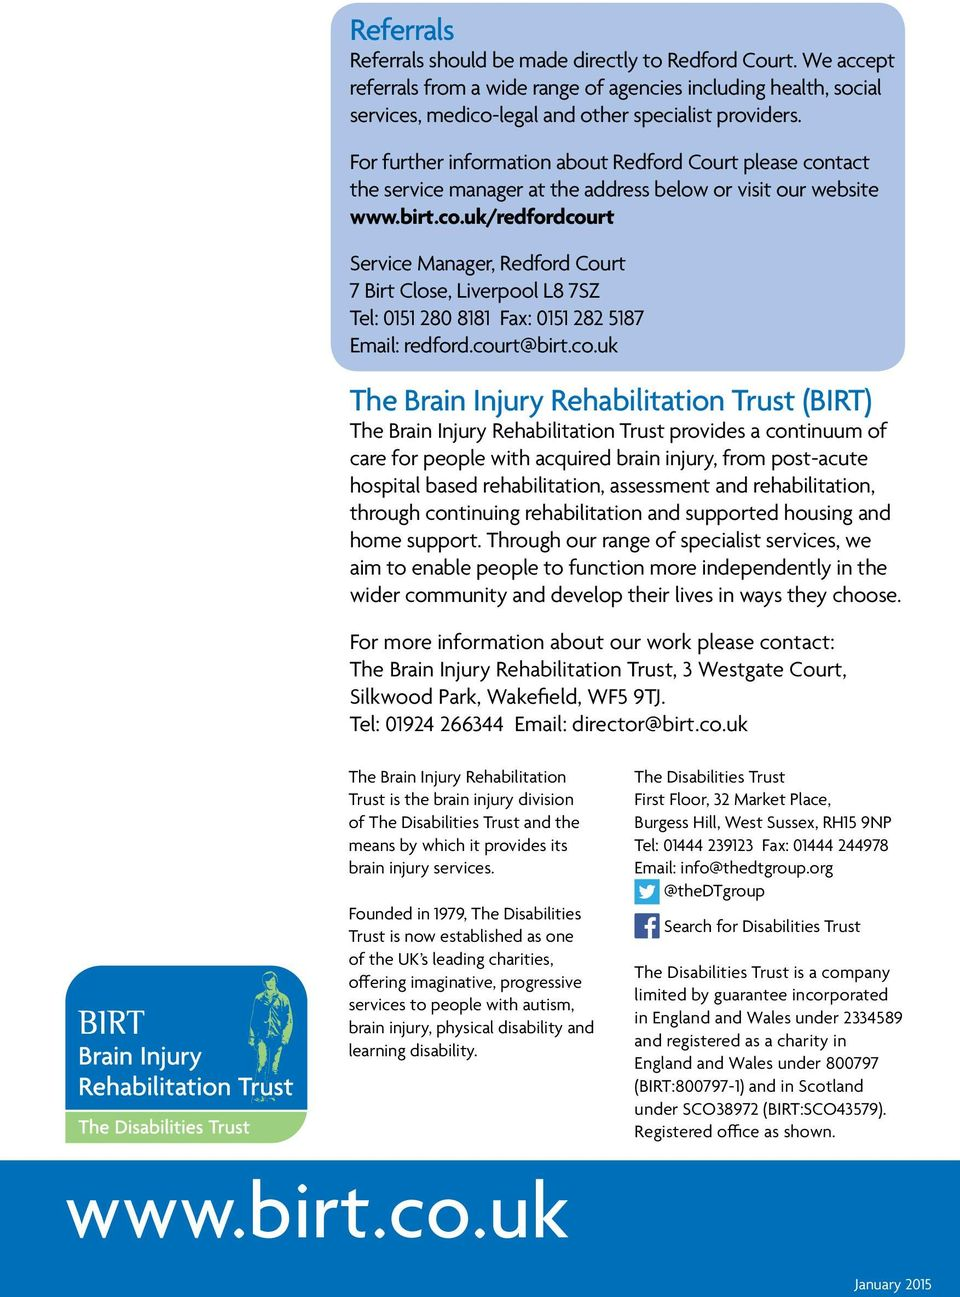 court@birt.co.uk The Brain Injury Rehabilitation Trust (BIRT) The Brain Injury Rehabilitation Trust provides a continuum of care for people with acquired brain injury, from post-acute hospital based